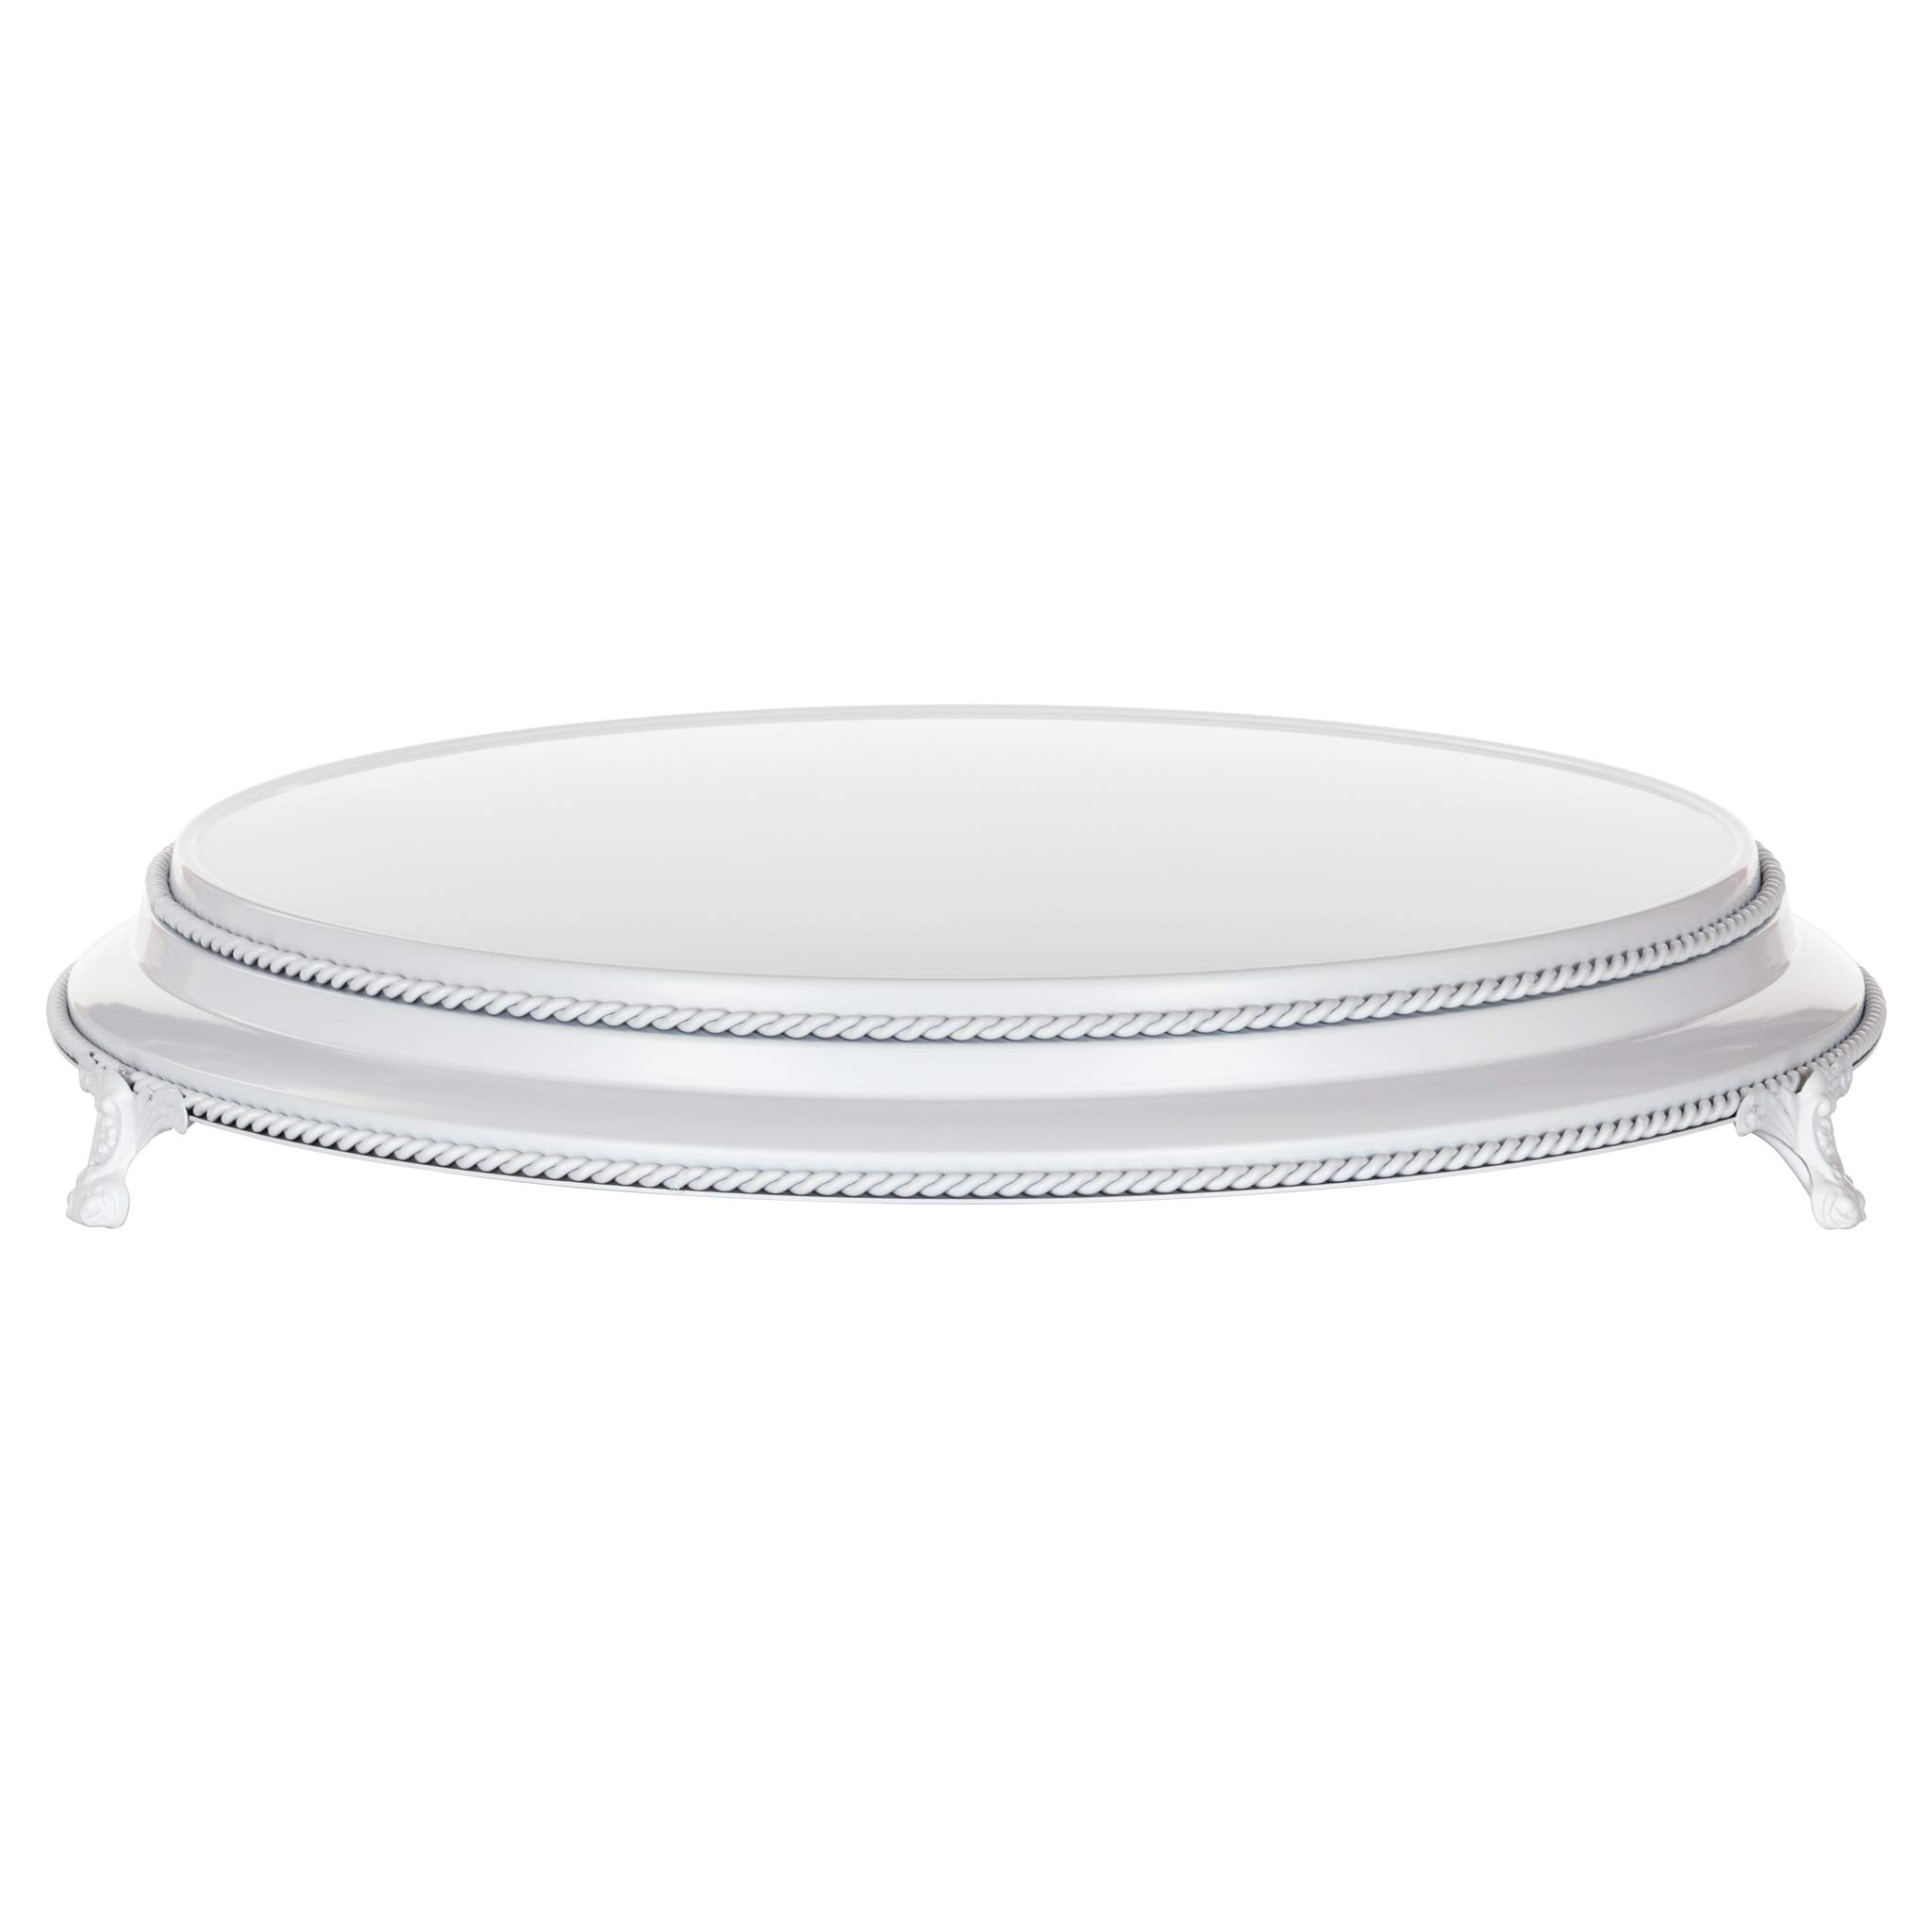 Amalfi Decor 16 Inch Cake Stand Plateau Riser, Large Dessert Cupcake Pastry Candy Display Plate for Wedding Event Birthday Party, Round Metal Pedestal Holder, White by Amalfi Décor